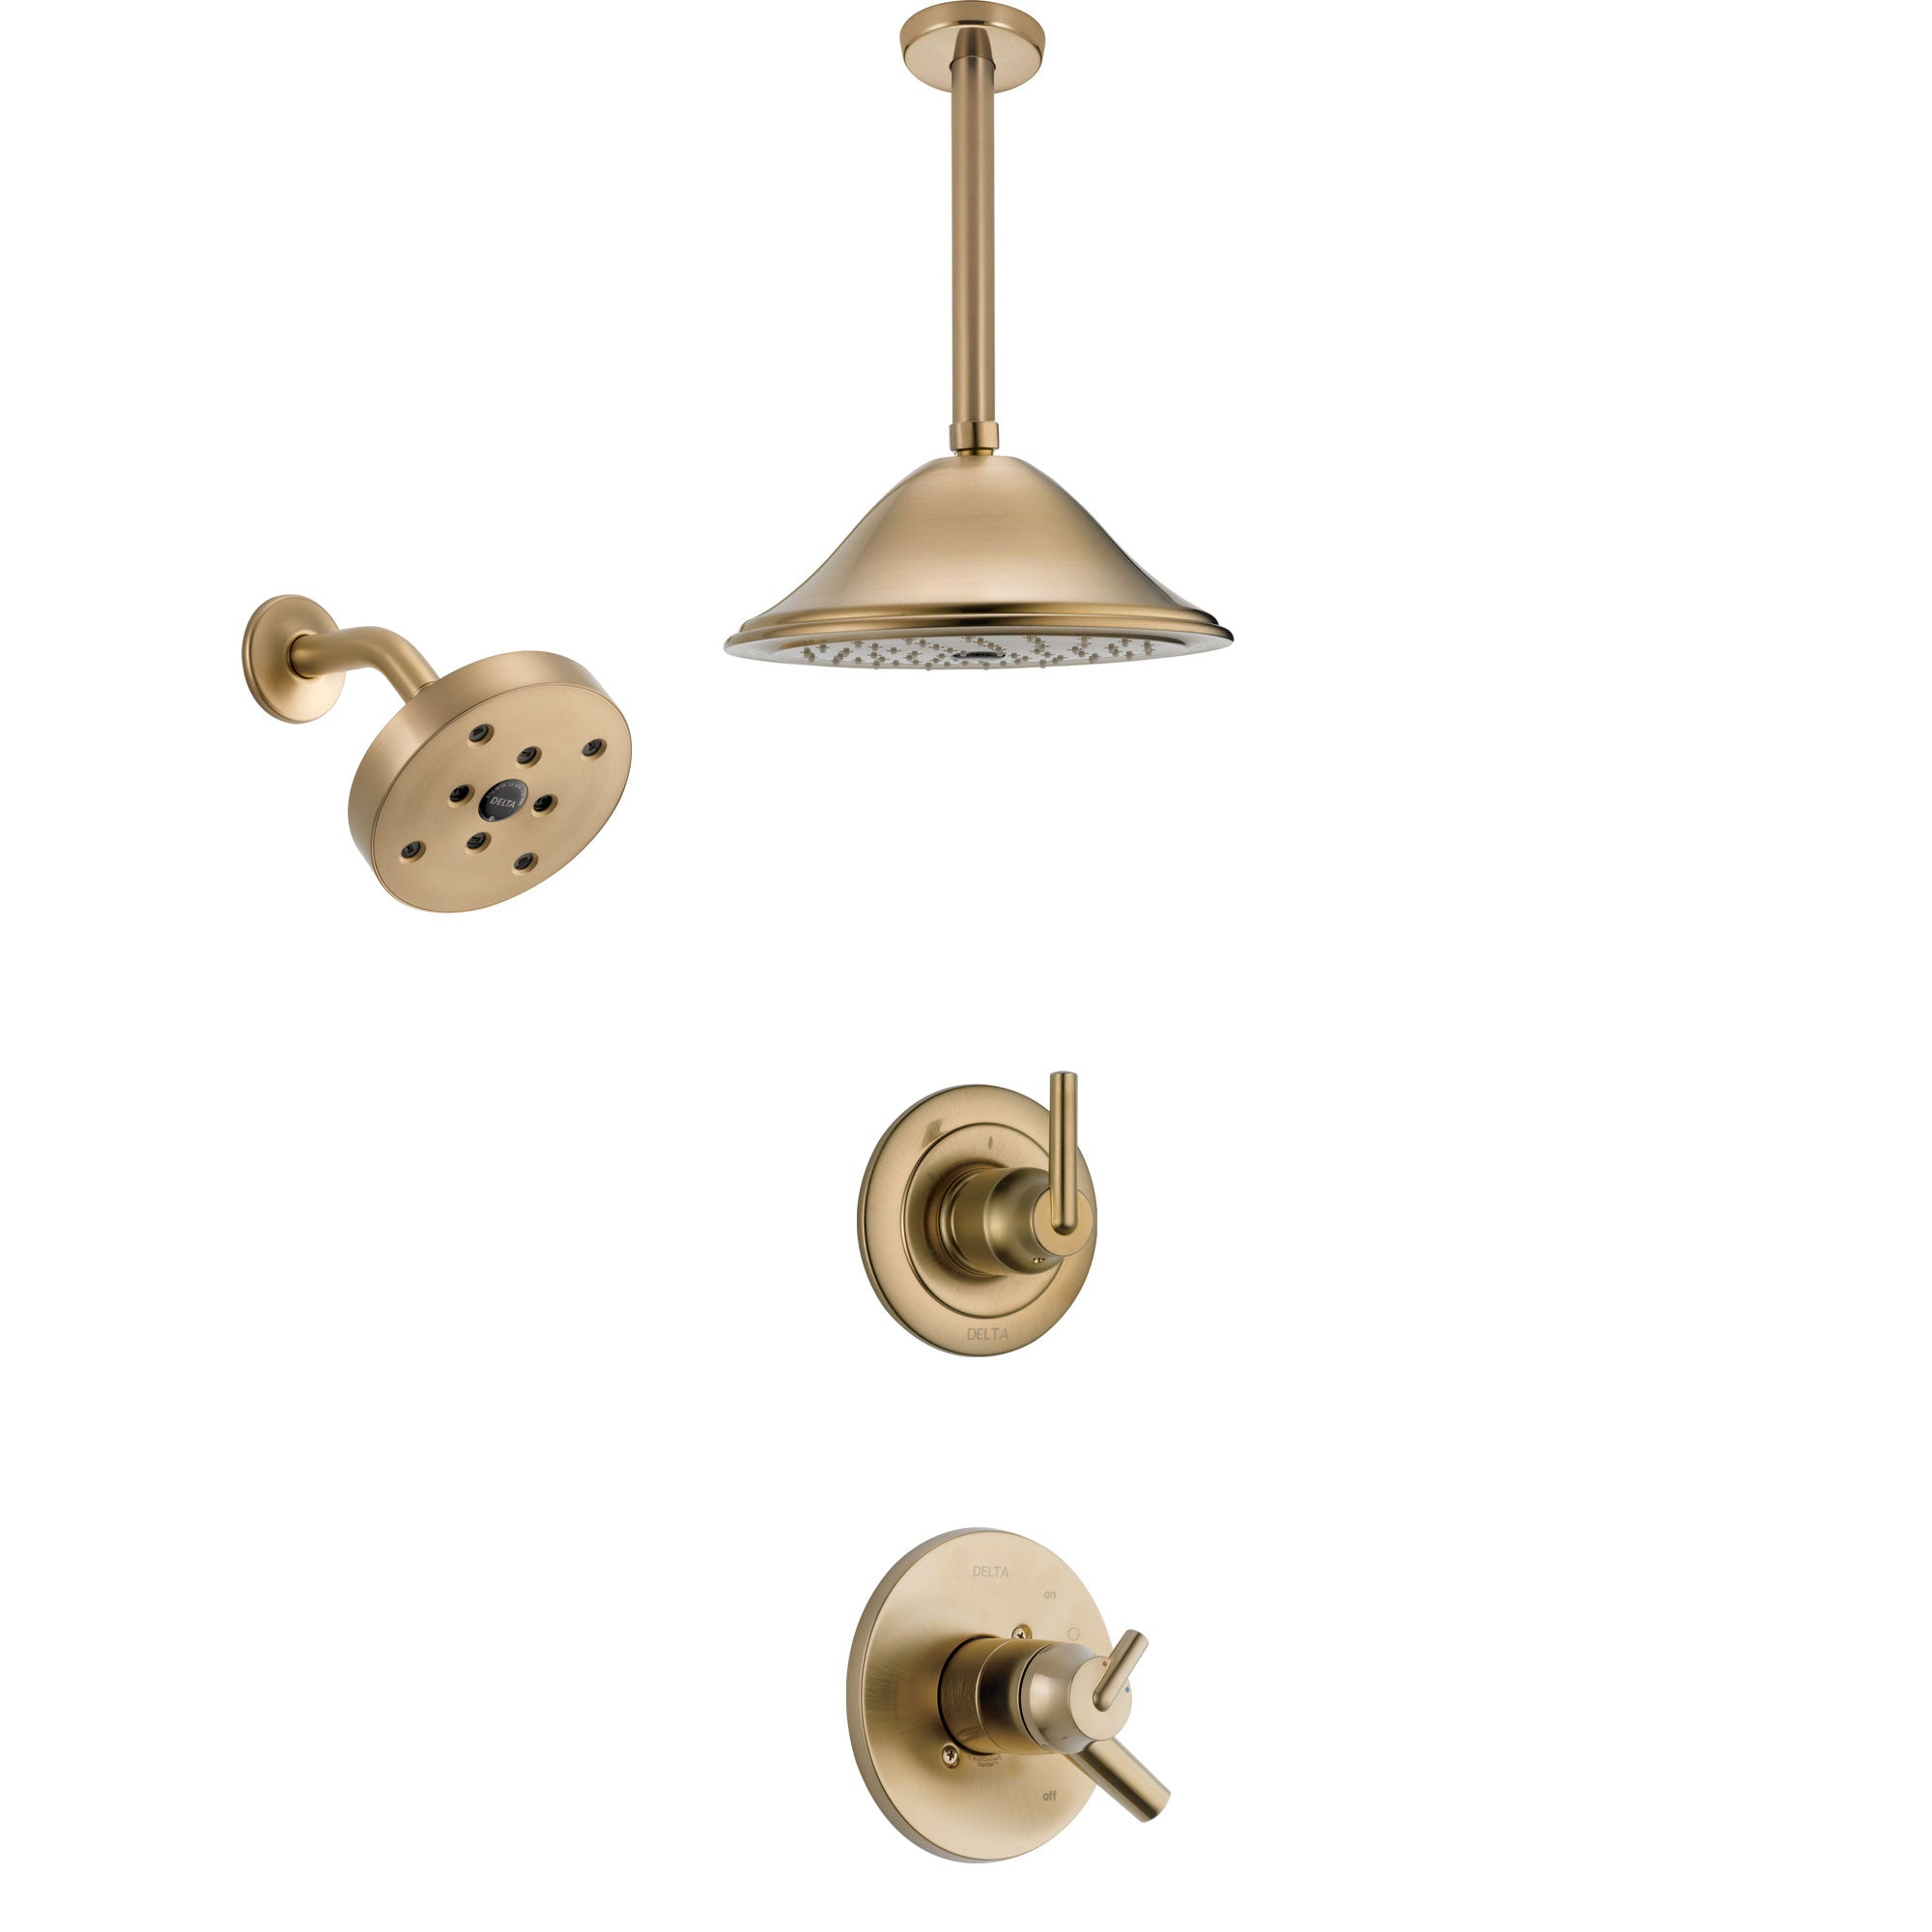 Delta Trinsic Champagne Bronze Finish Shower System with Dual Control Handle, 3-Setting Diverter, Showerhead, and Ceiling Mount Showerhead SS17259CZ4